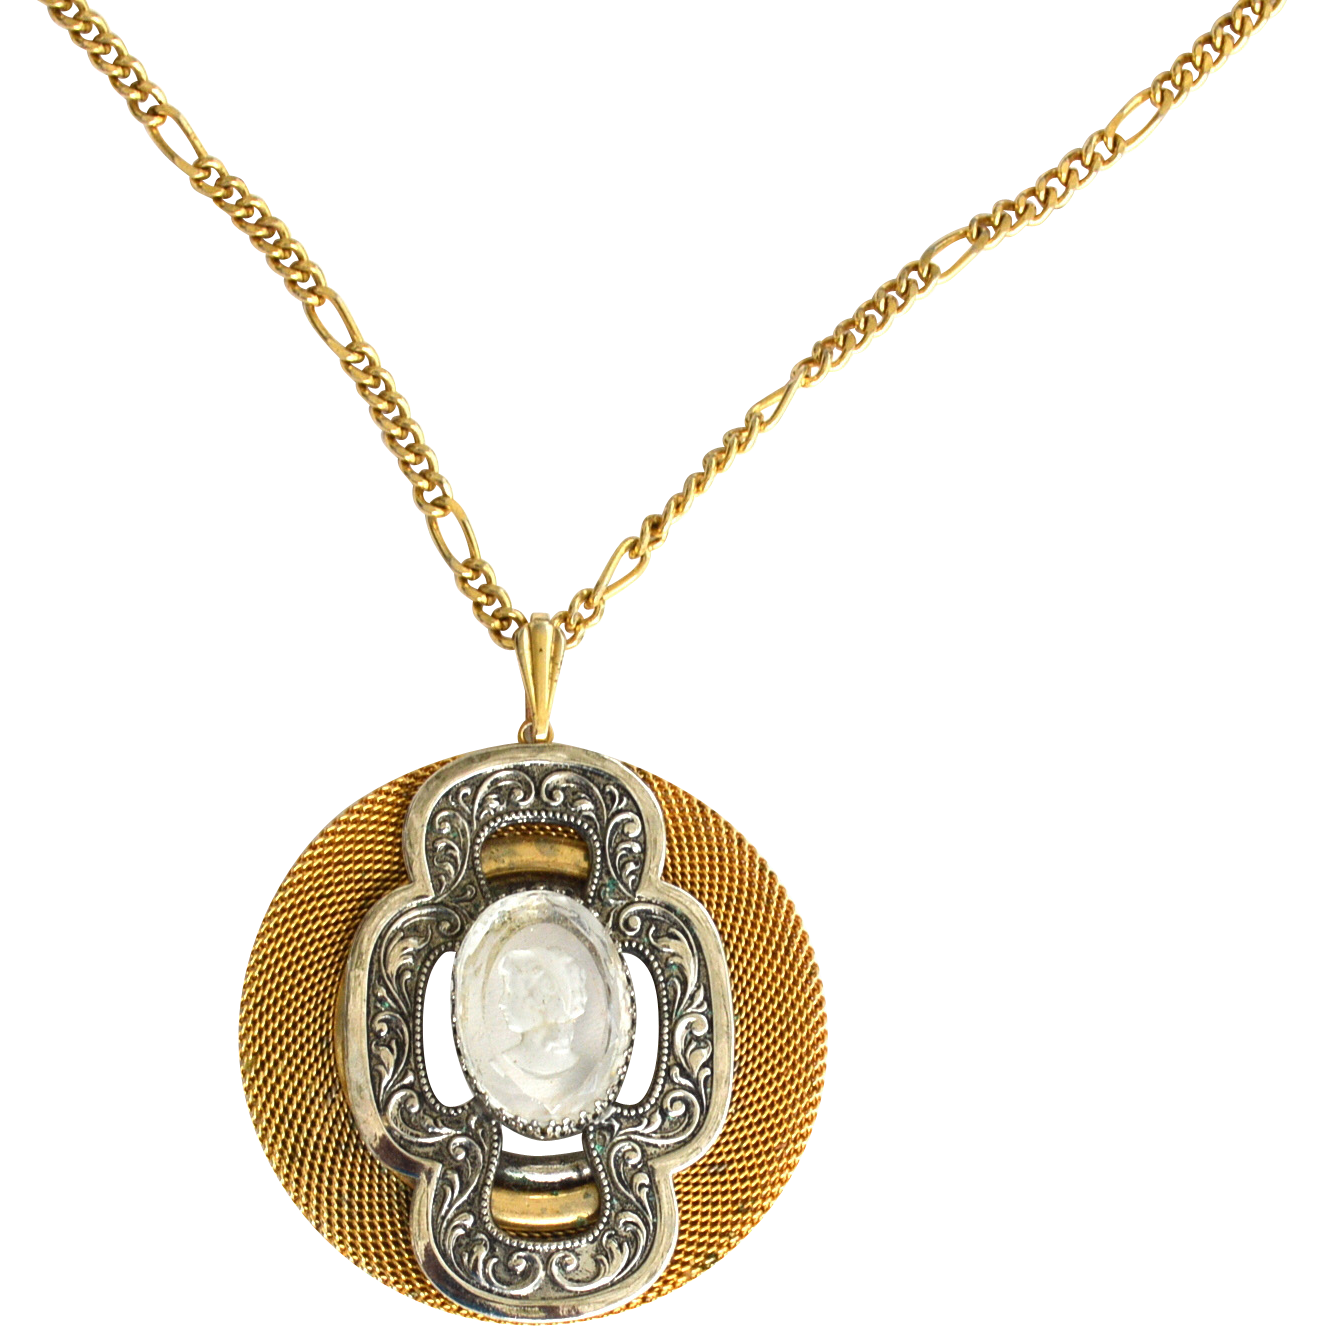 Vintage Reverse Carved Intaglio Cameo Necklace, Very Ornate